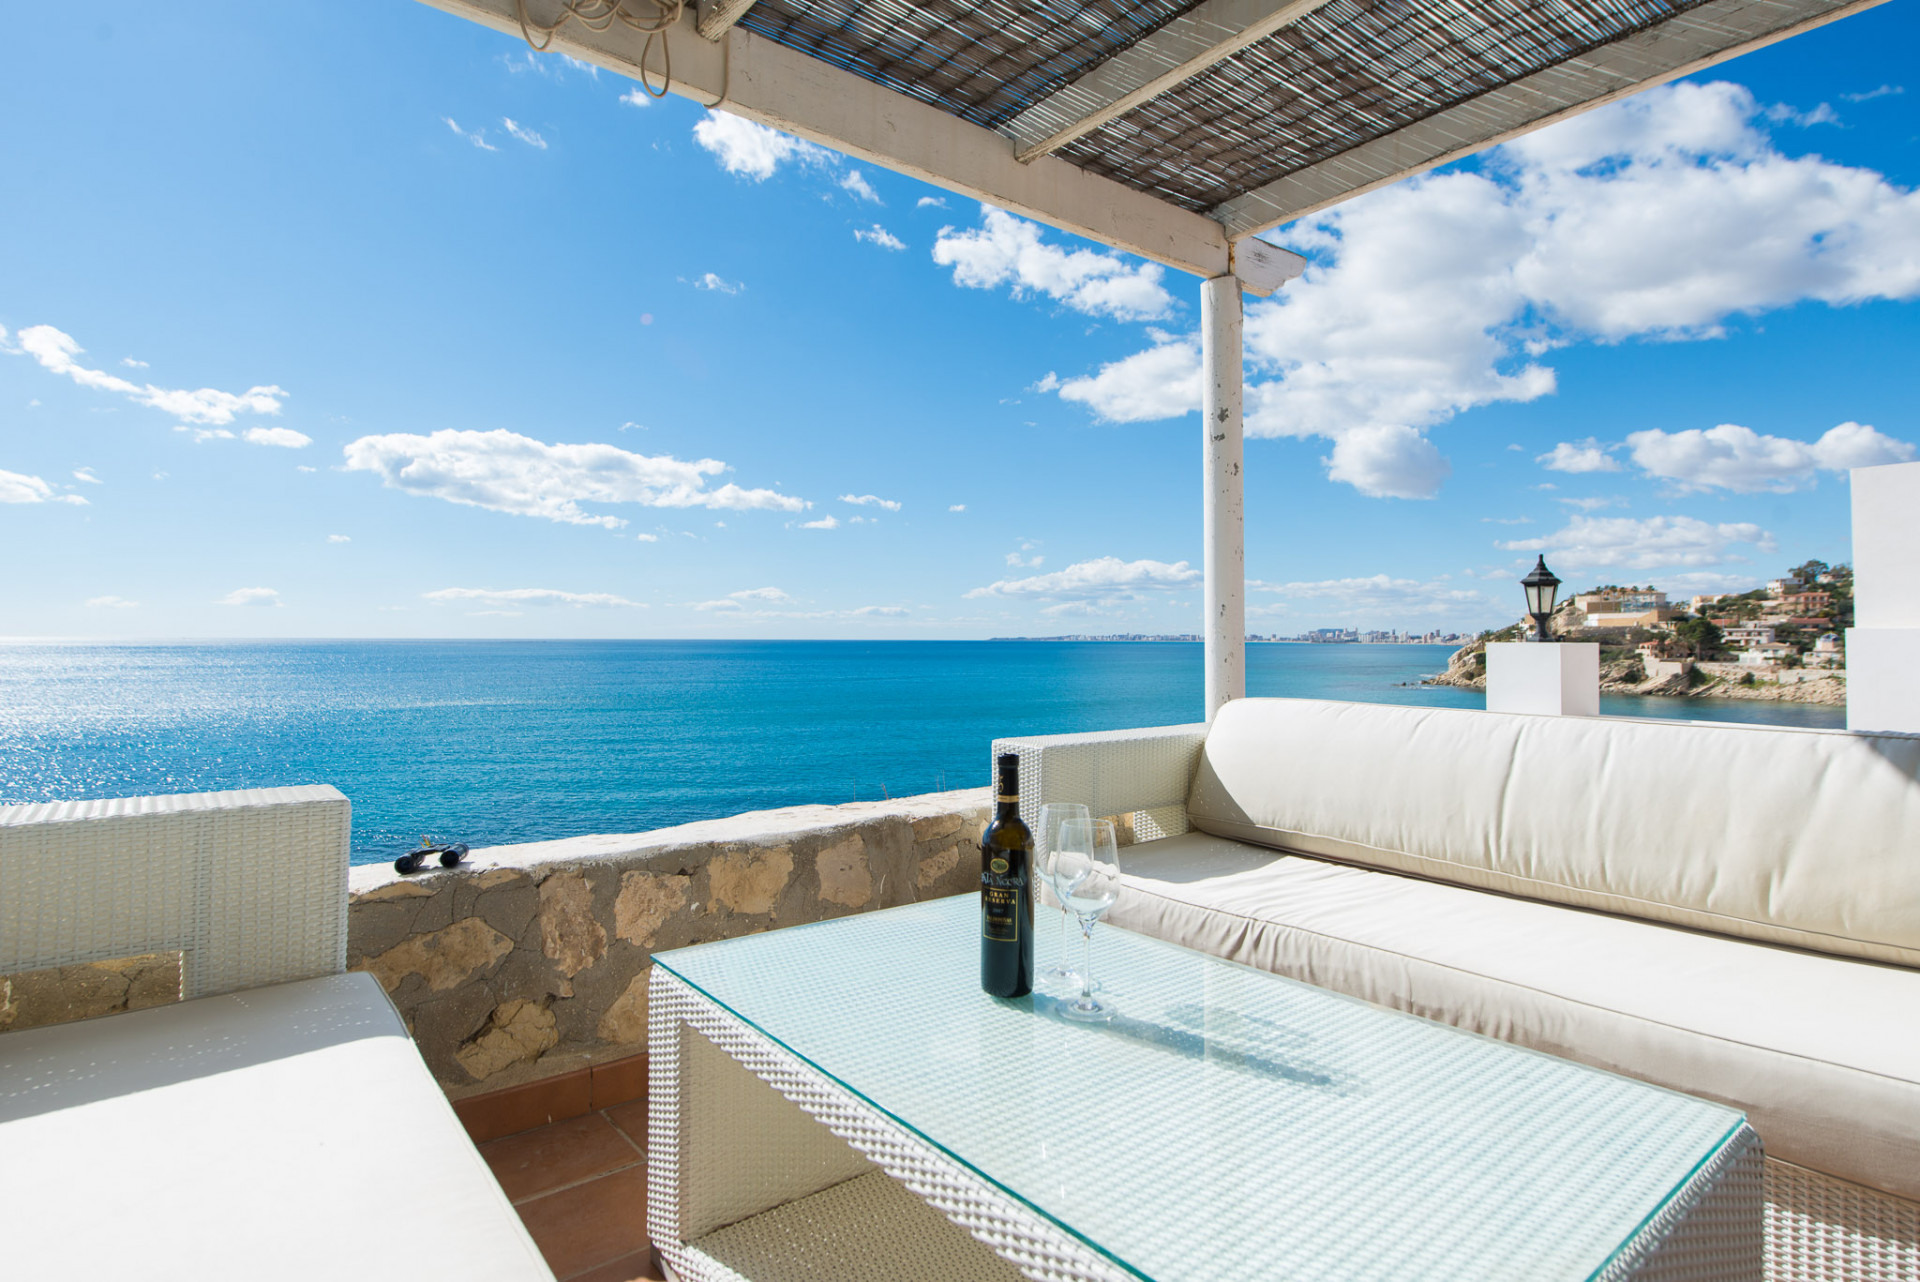 Villa with amazing sea view and pool